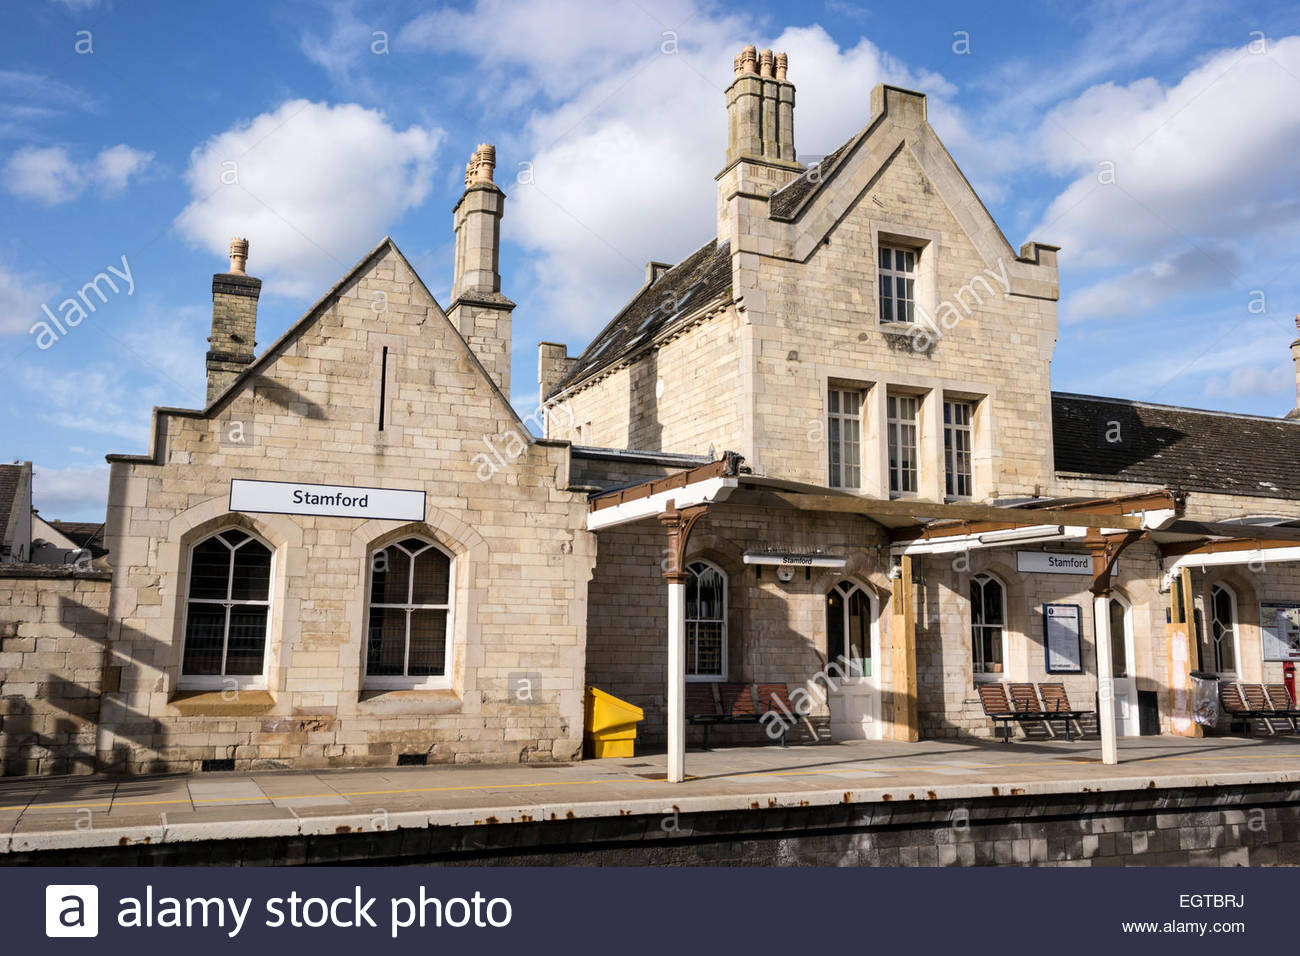 Stamford Railway Station, Lincolnshire, UK.  Grade II listed building - Stock Image